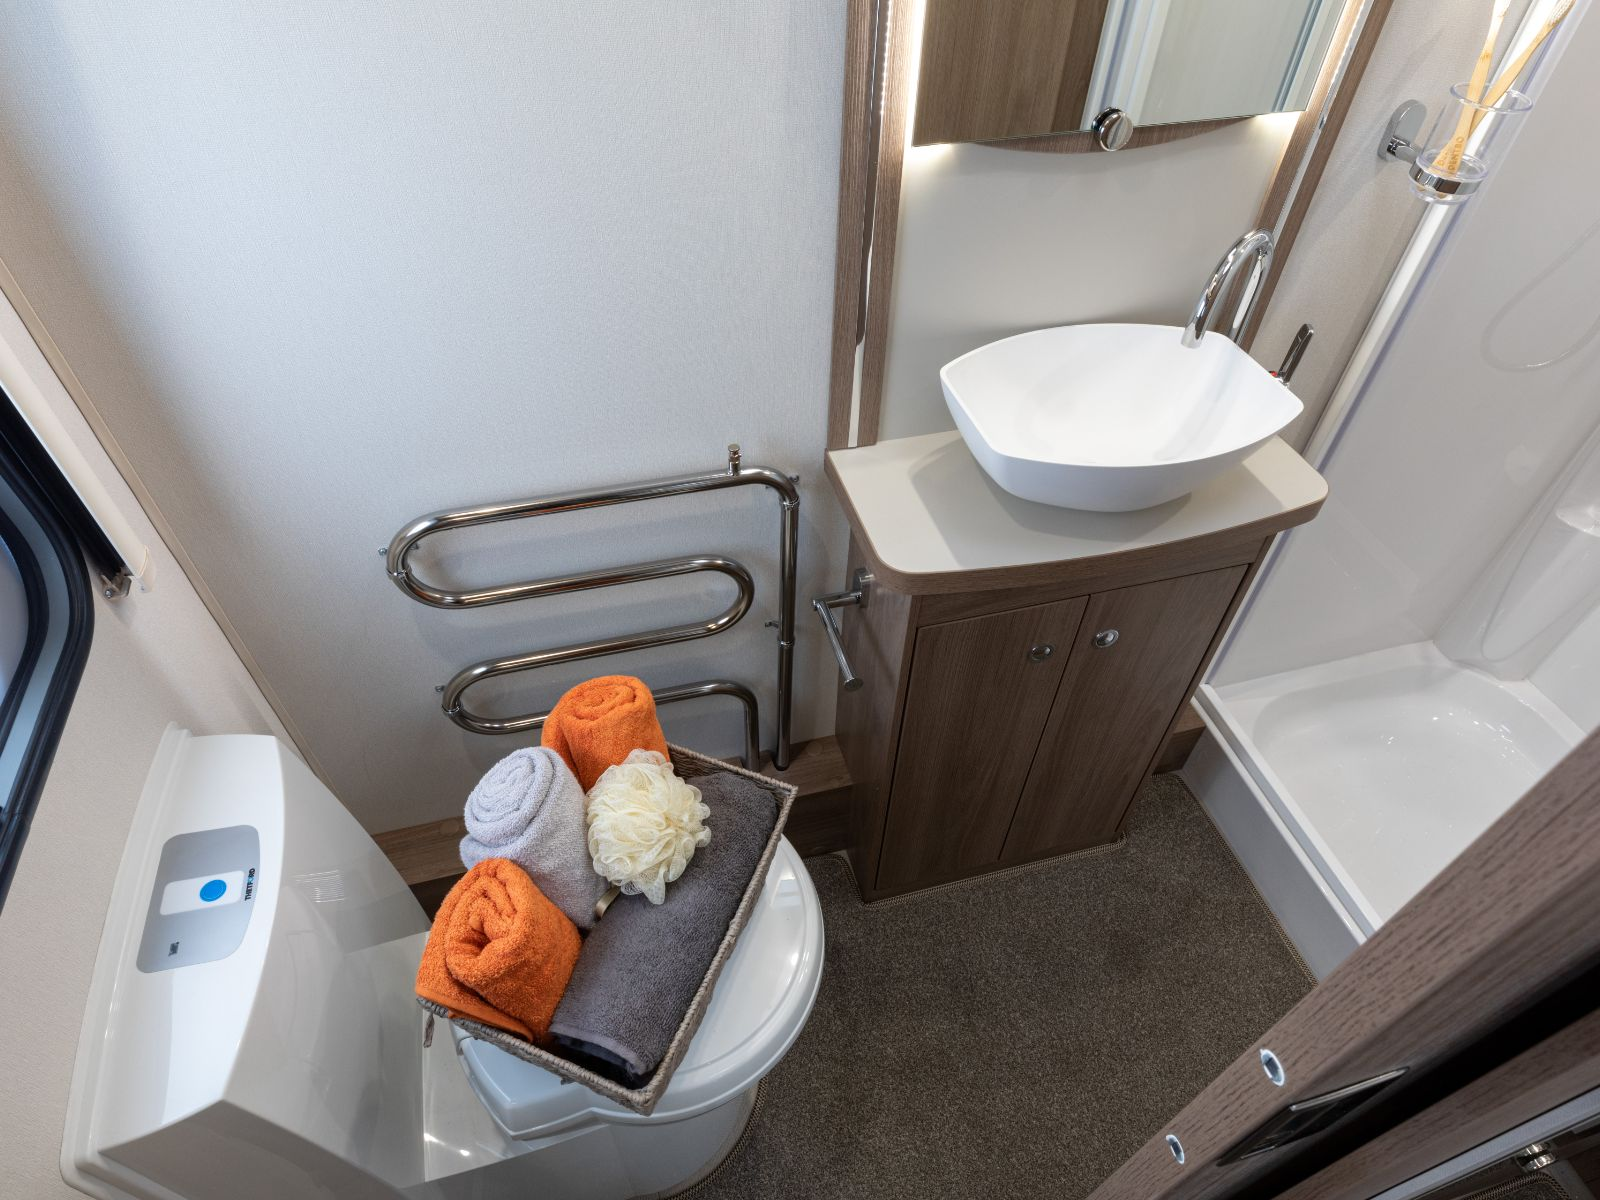 bathroom with sink and toilet with basket of towels on top '